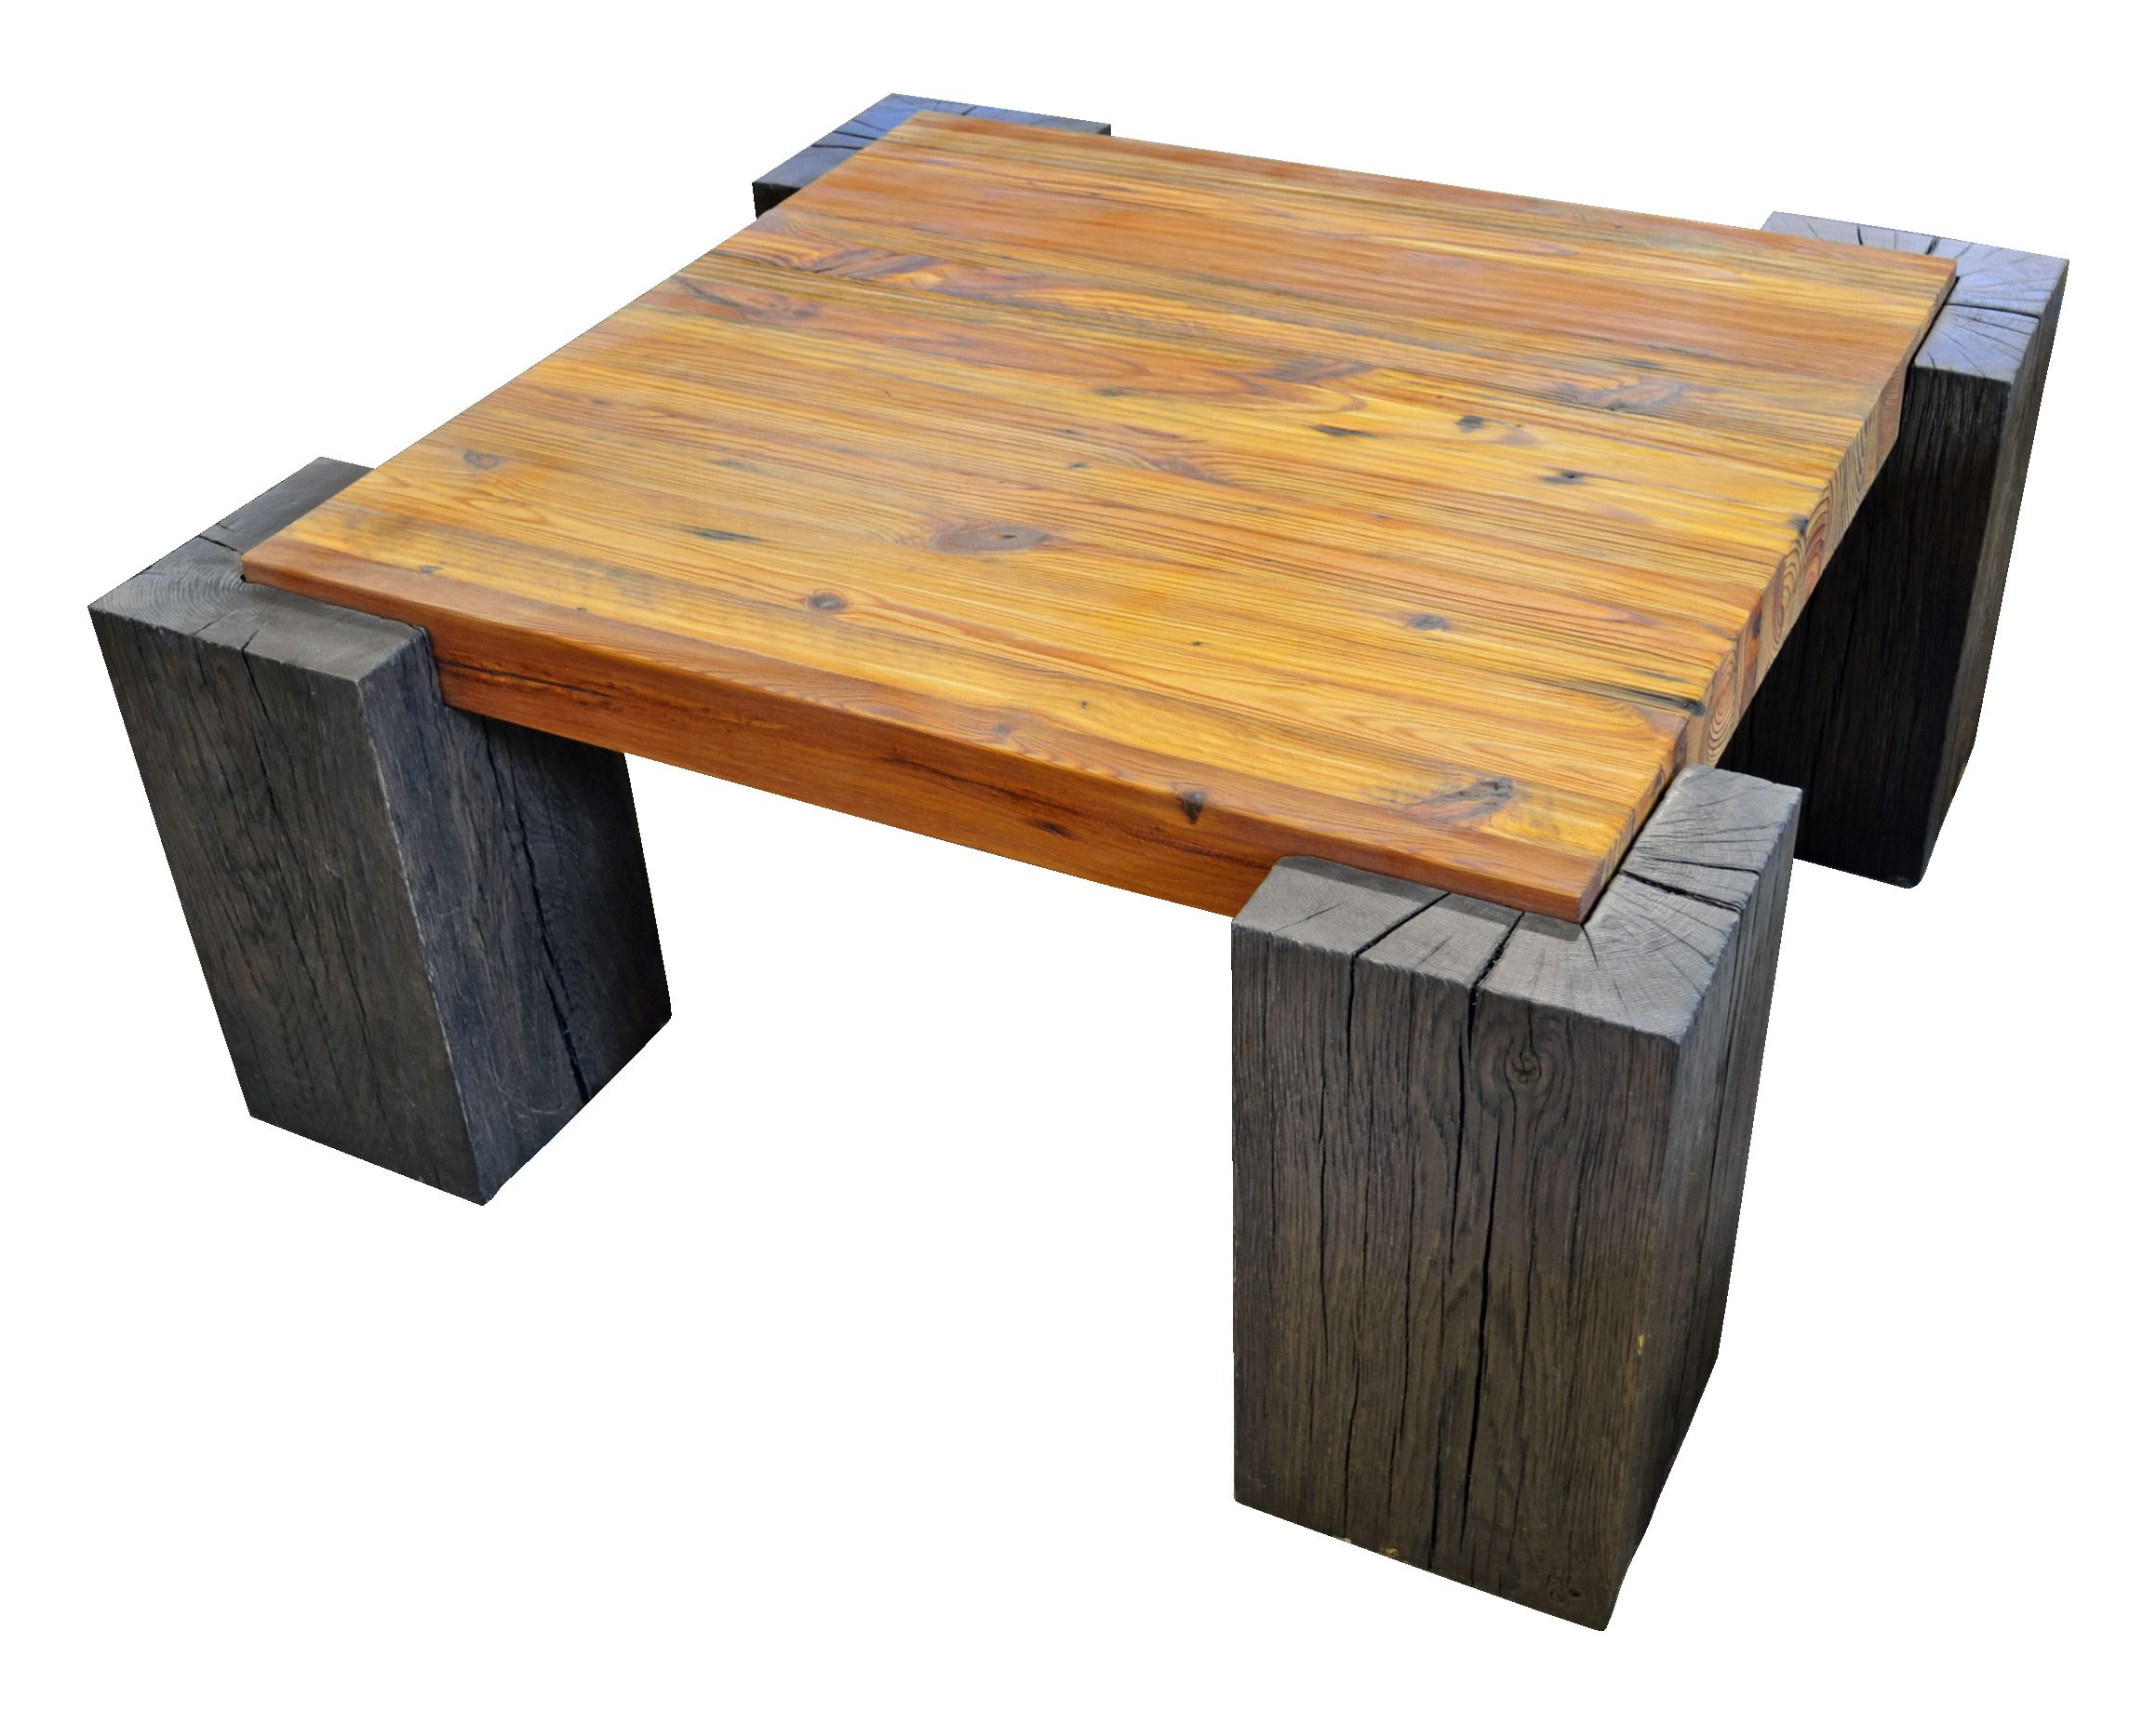 The Timber Coffee Table